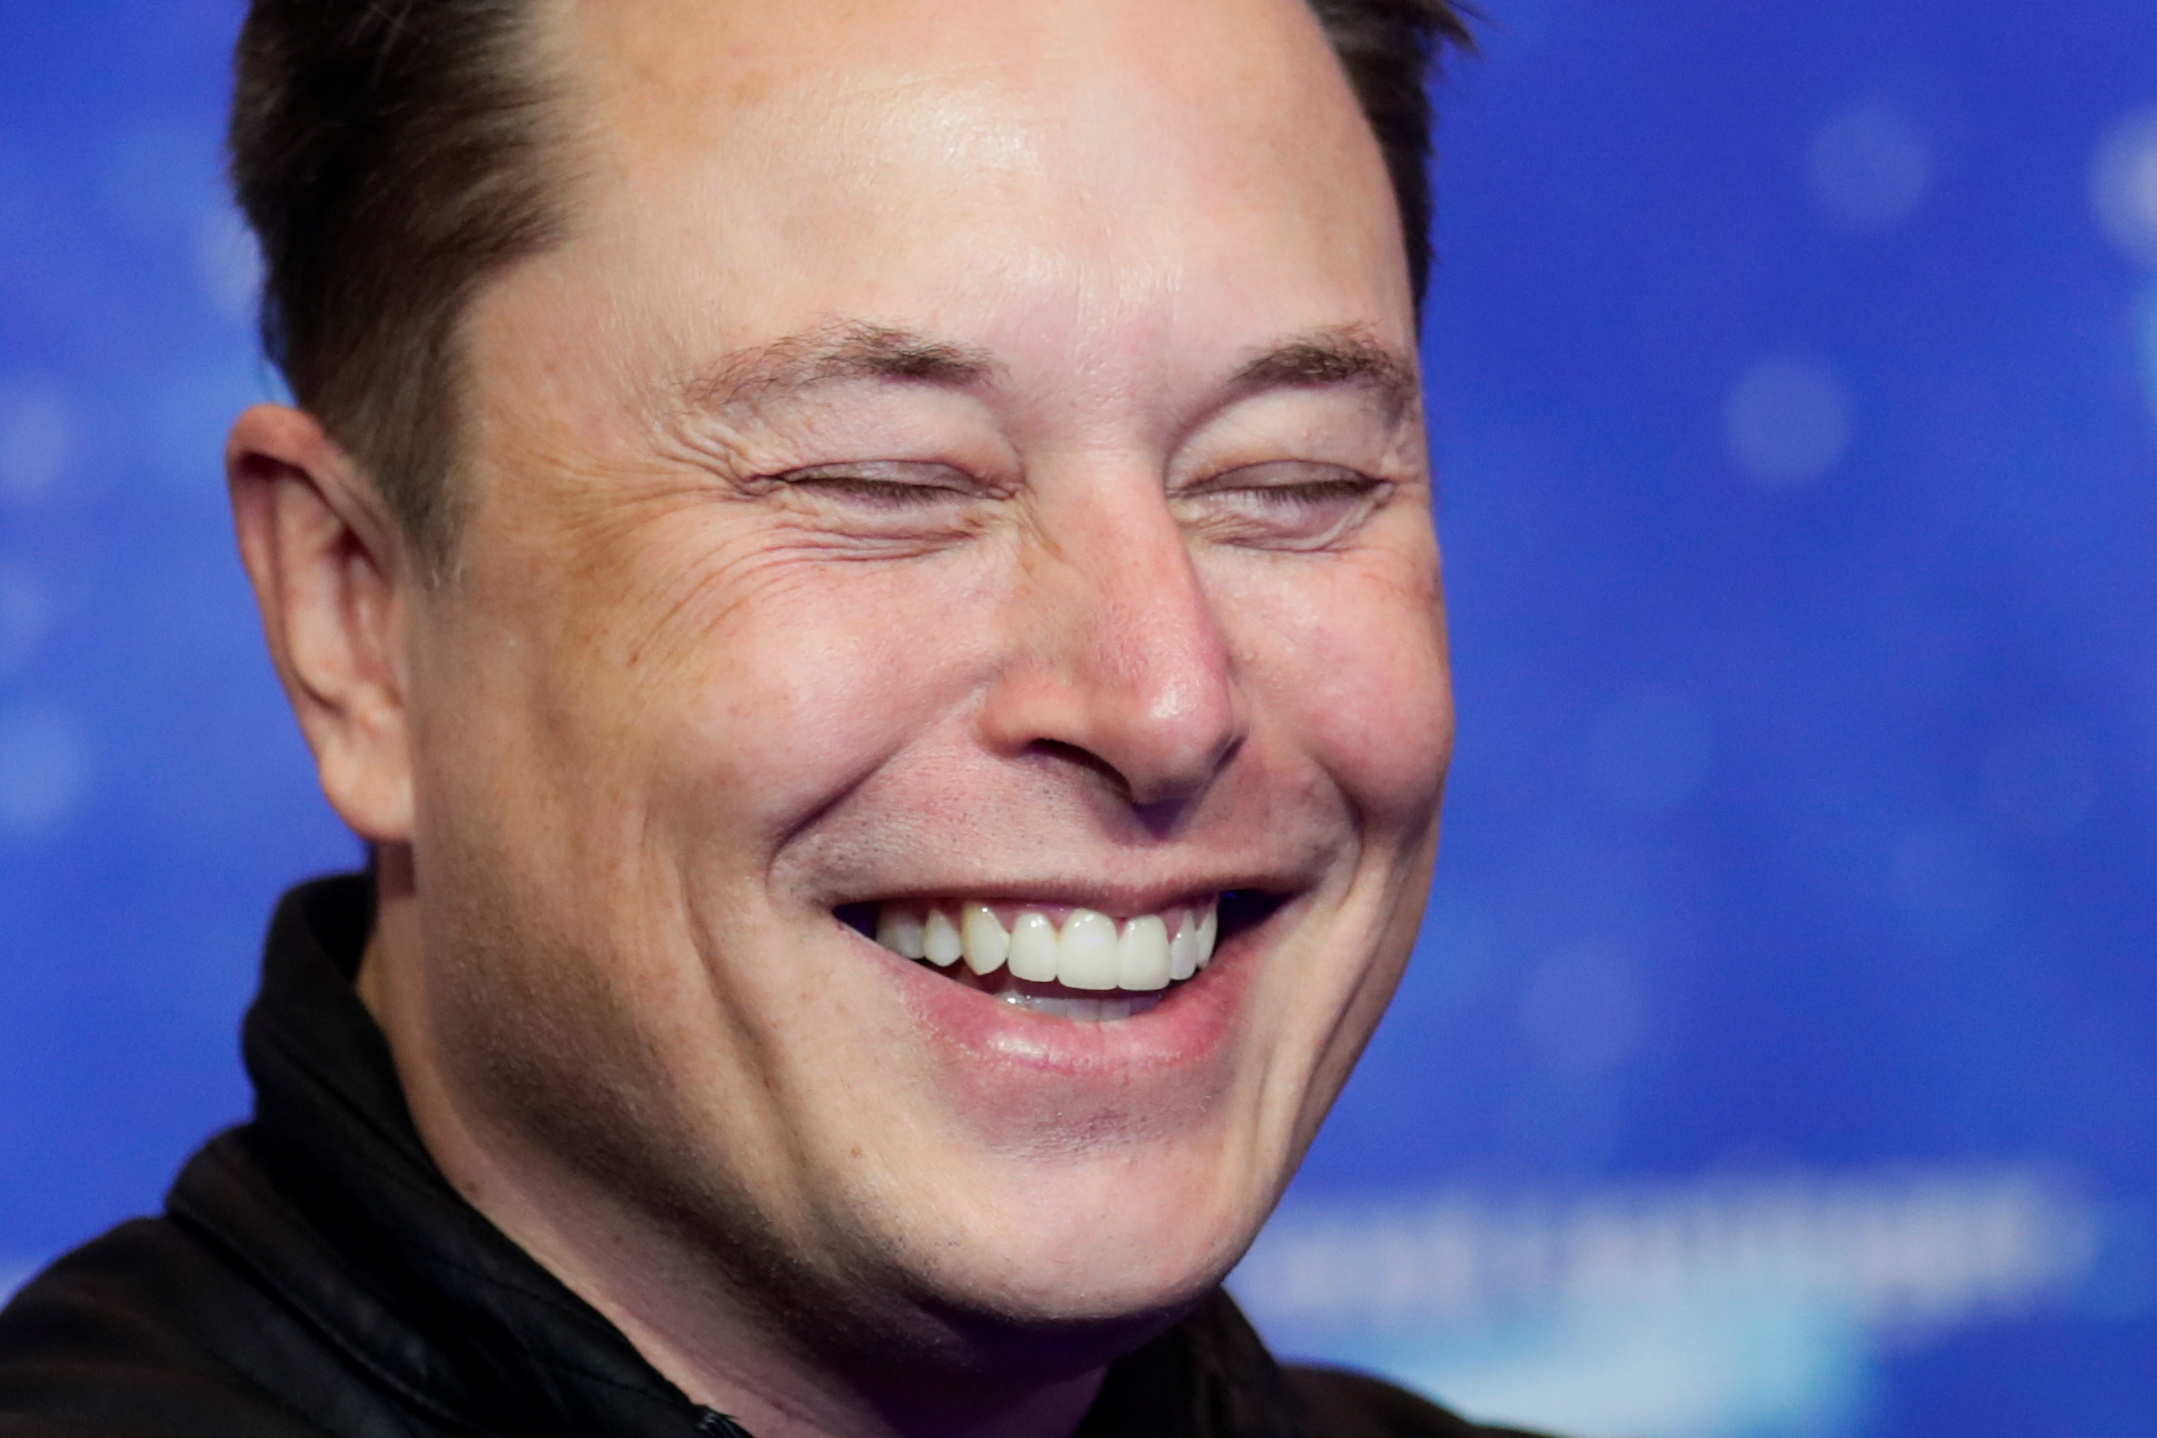 SpaceX owner and Tesla CEO Elon Musk laughs after arriving on the red carpet for the Axel Springer award, in Berlin, Germany, December 1, 2020.